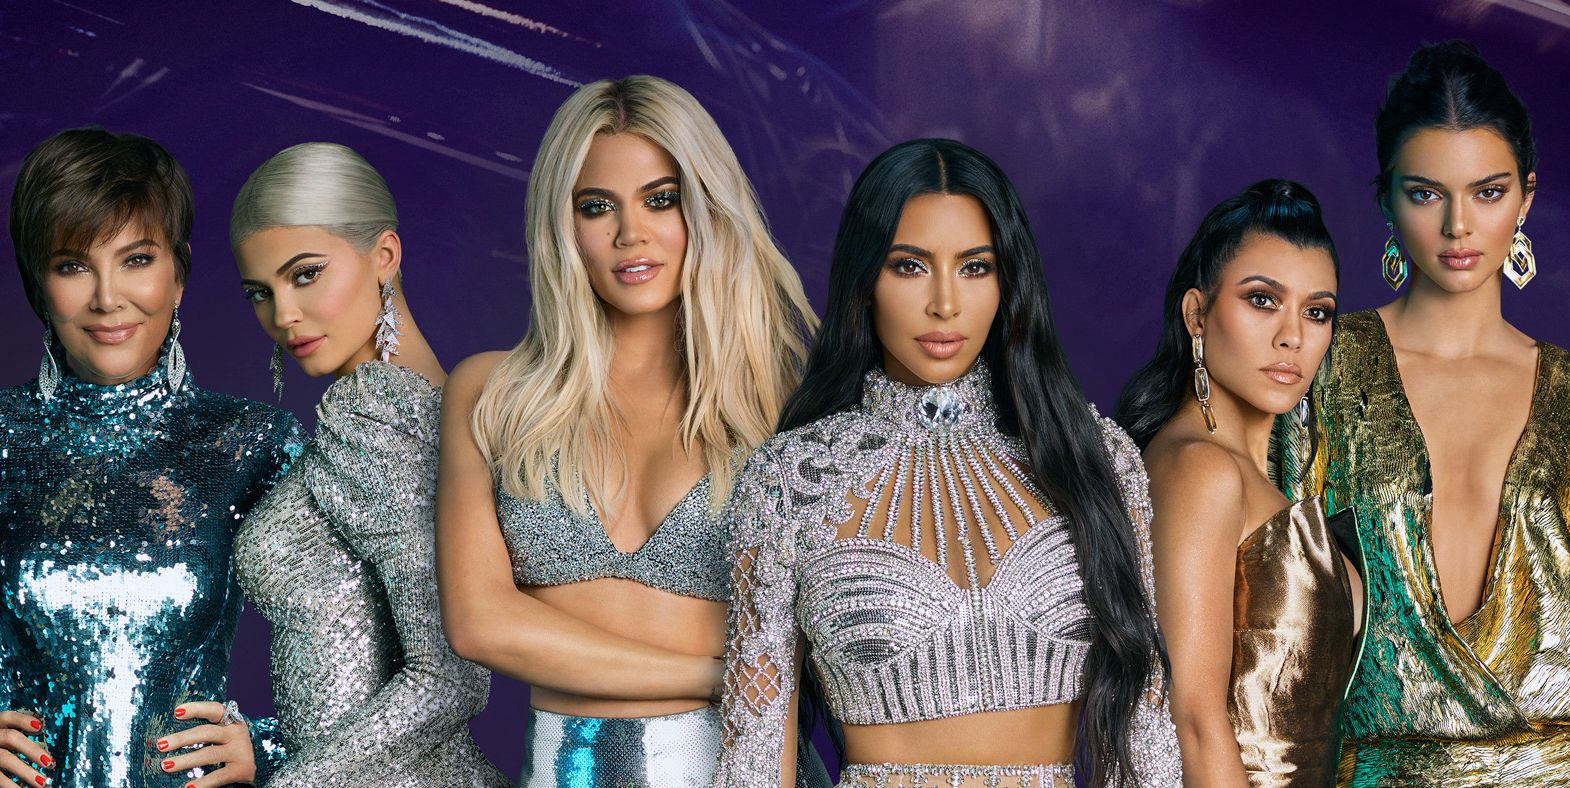 Keeping Up With The Kardashians season 18b to stream in the UK on the same day as the US - Digital Spy